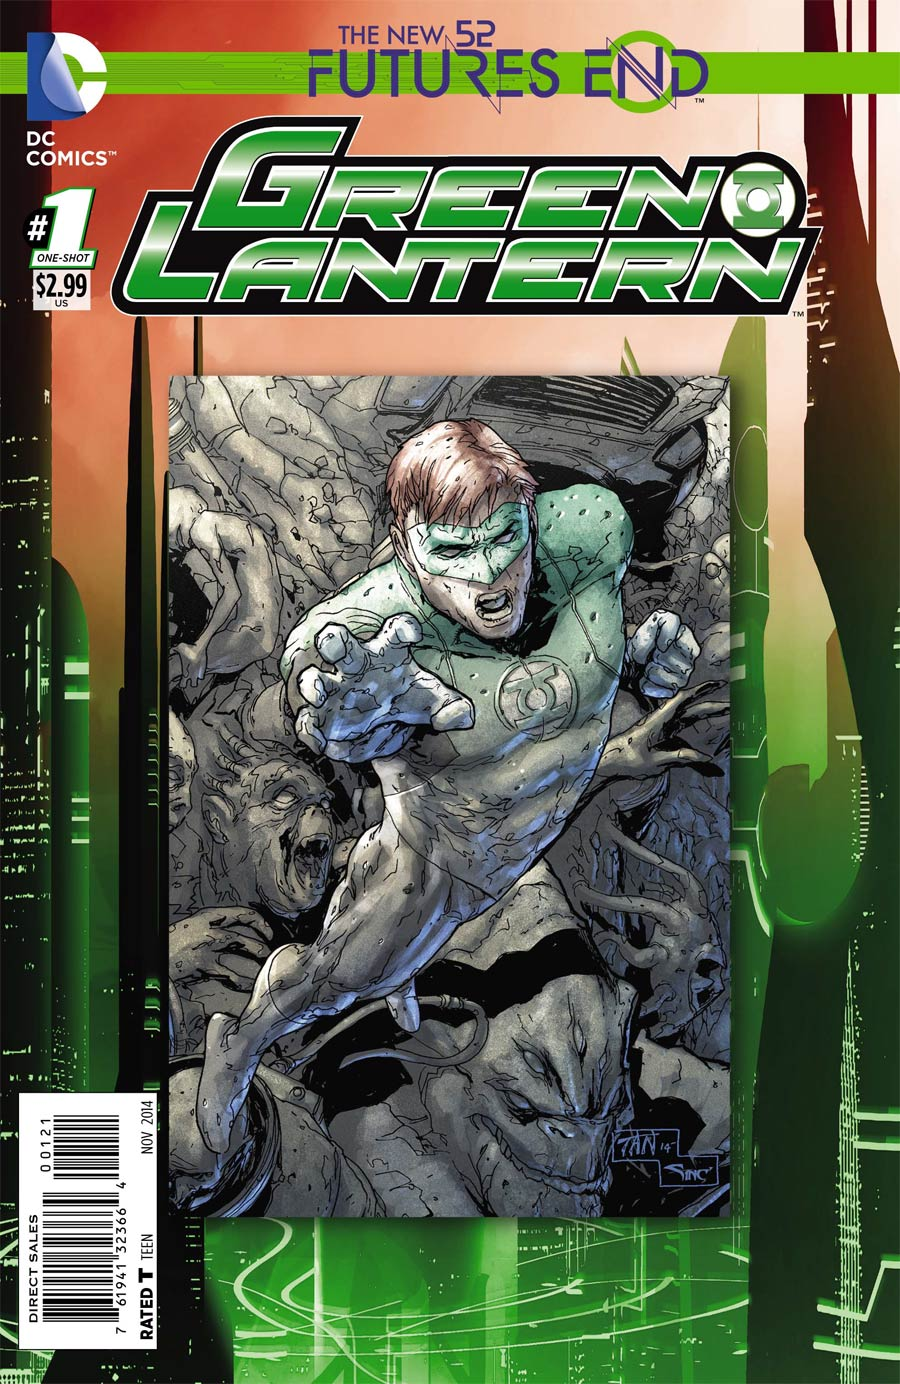 Green Lantern Futures End #1 Cover B Standard Cover